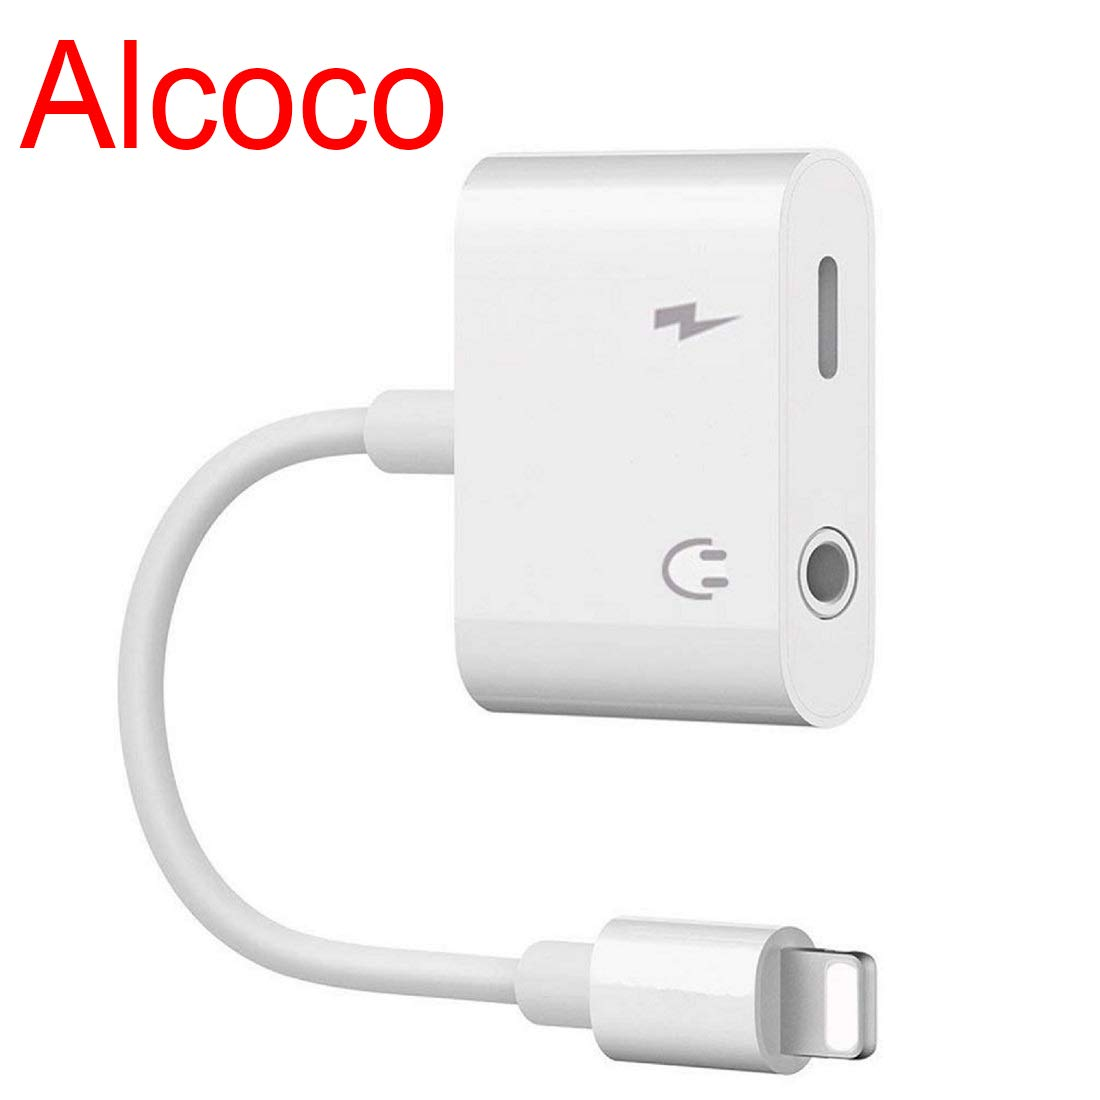 Headphone Adapter for iPhone 8 3.5mm Splitter Jack Dongle Earphone Cable Charge and Aux Audio Connector for iPhone X//Xs//XS max//8//8 Plus//7//7 Plus 2 in 1 Headphone for Music and Charge Support iOS 12 Alcoco